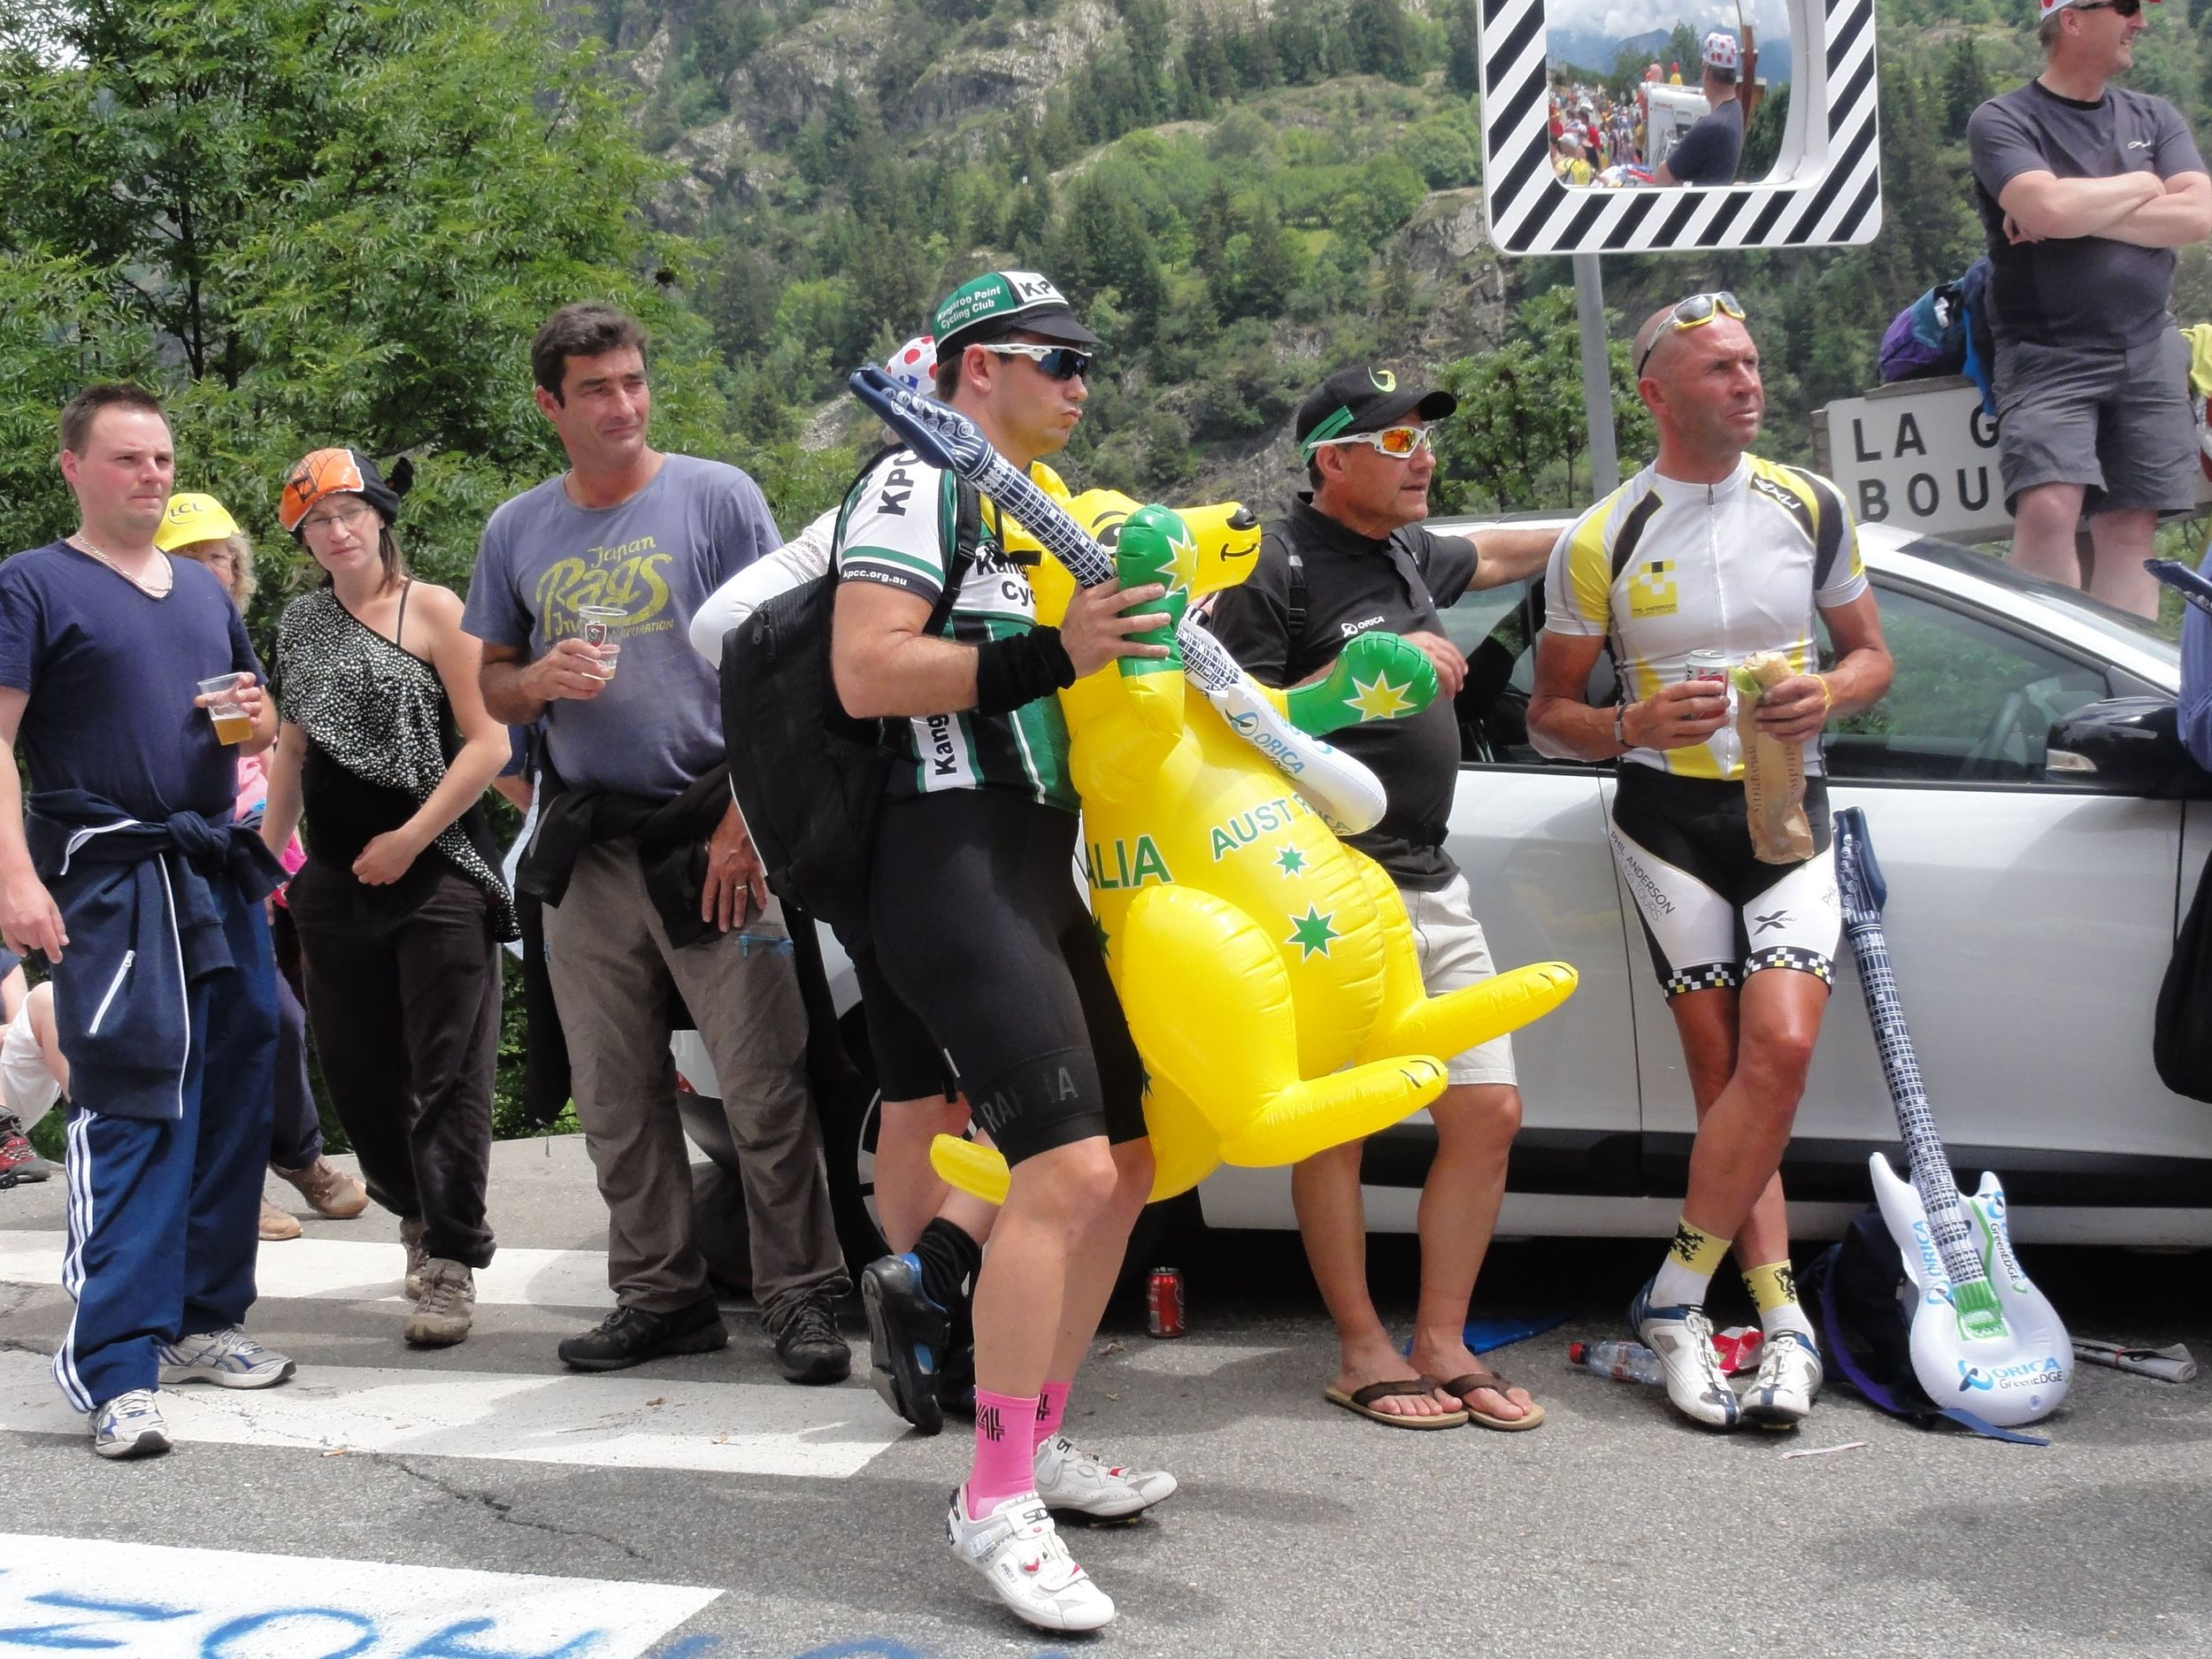 I stood on the side of the road for 3 hours waiting for the GreenEDGE car... in the end- they were a no show on Alpe d'Huez!